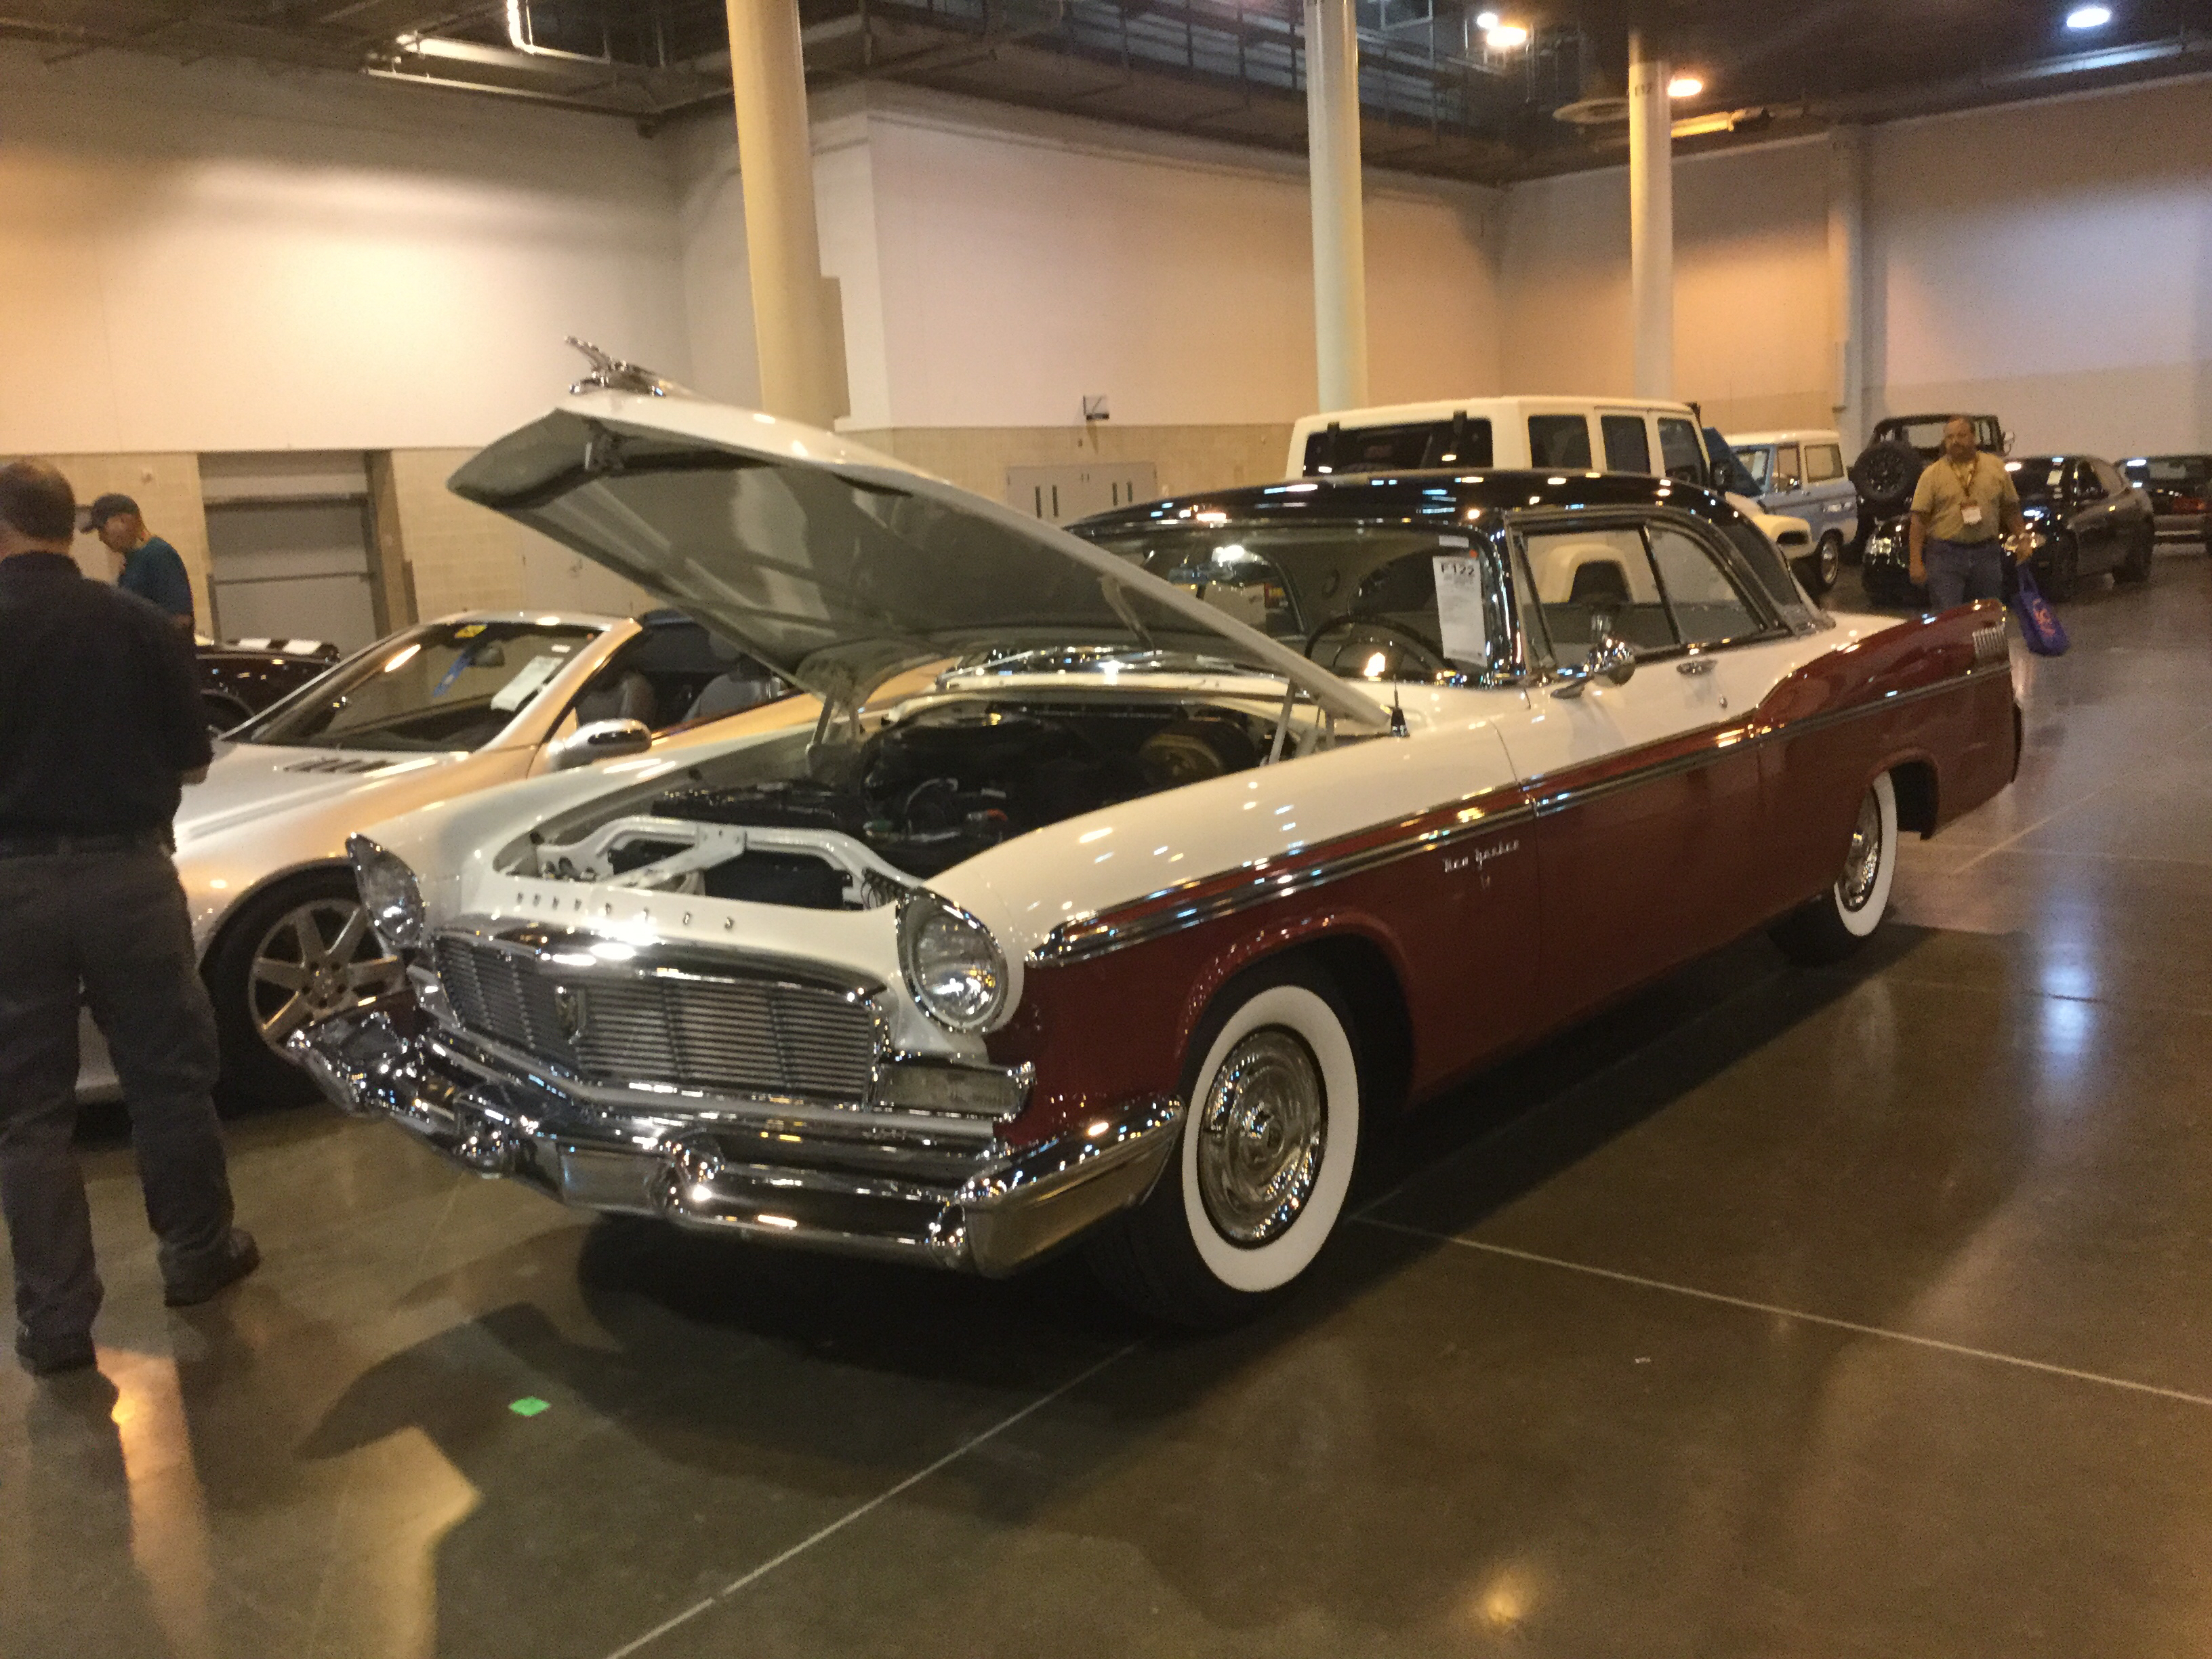 1958 Chrysler New Yorker Values | Hagerty Valuation Tool®